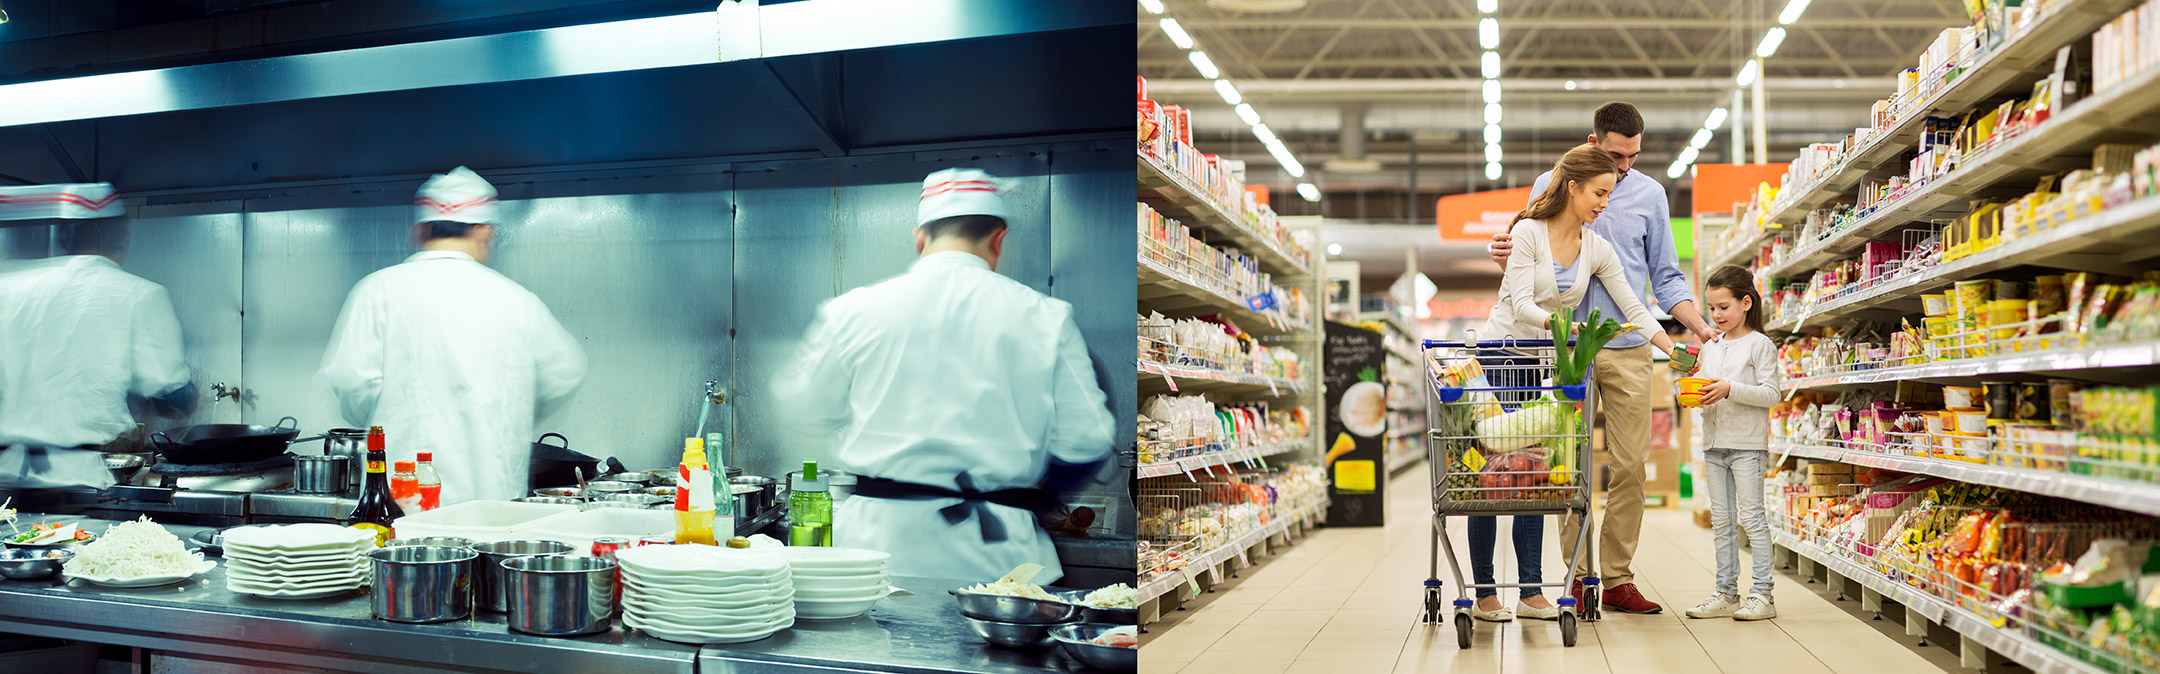 Native Harvest Food Service & Retail Products